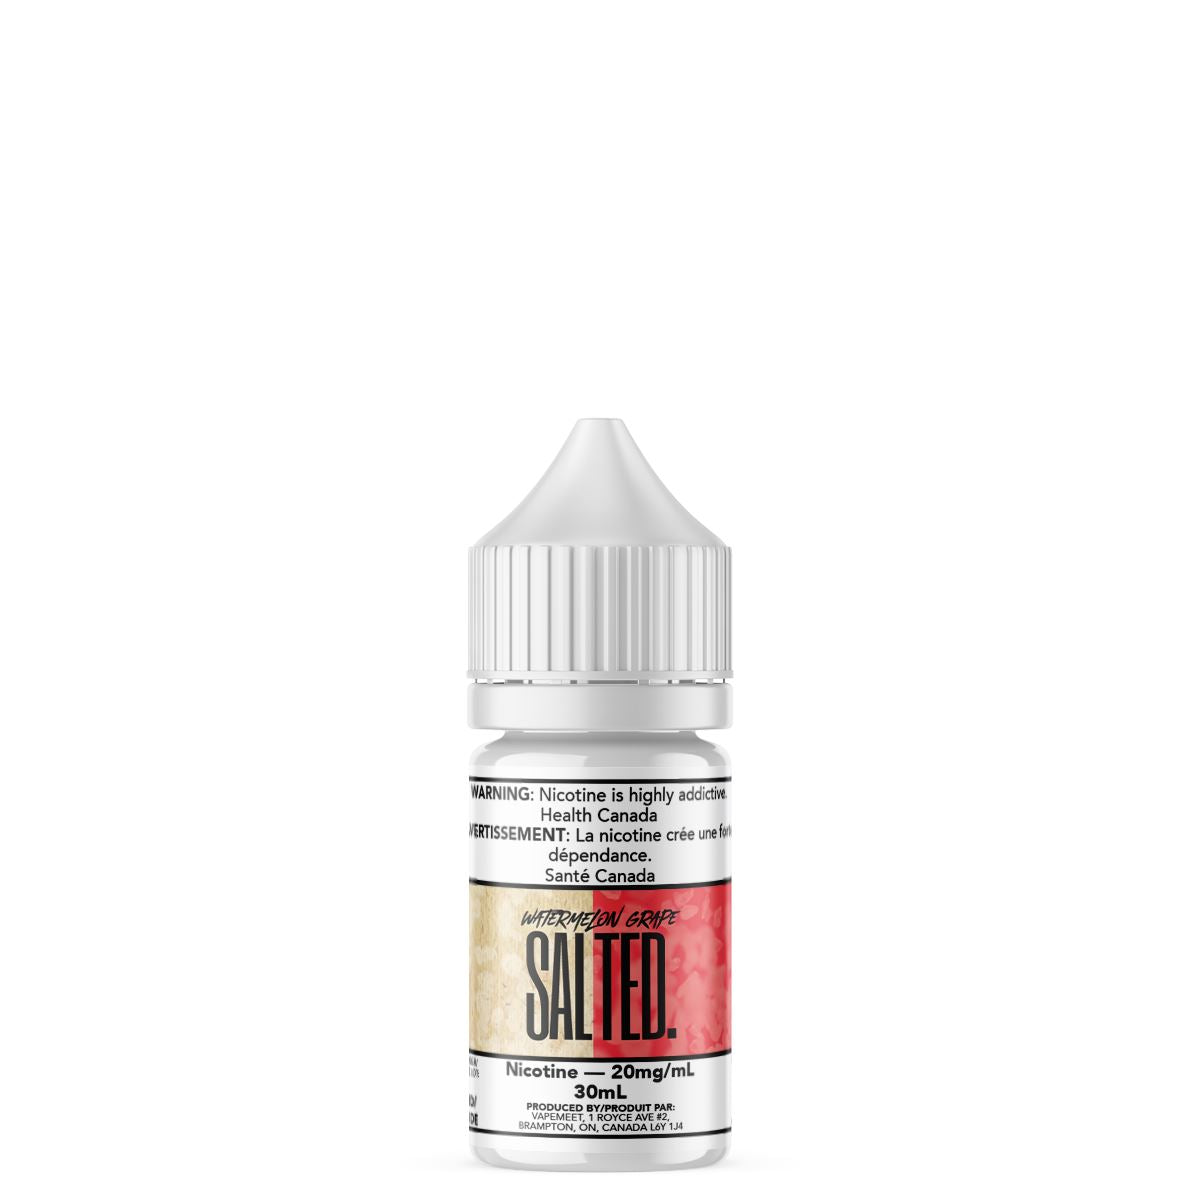 Salted. - Watermelon Grape E-Liquid Salted. 30mL 20 mg/mL